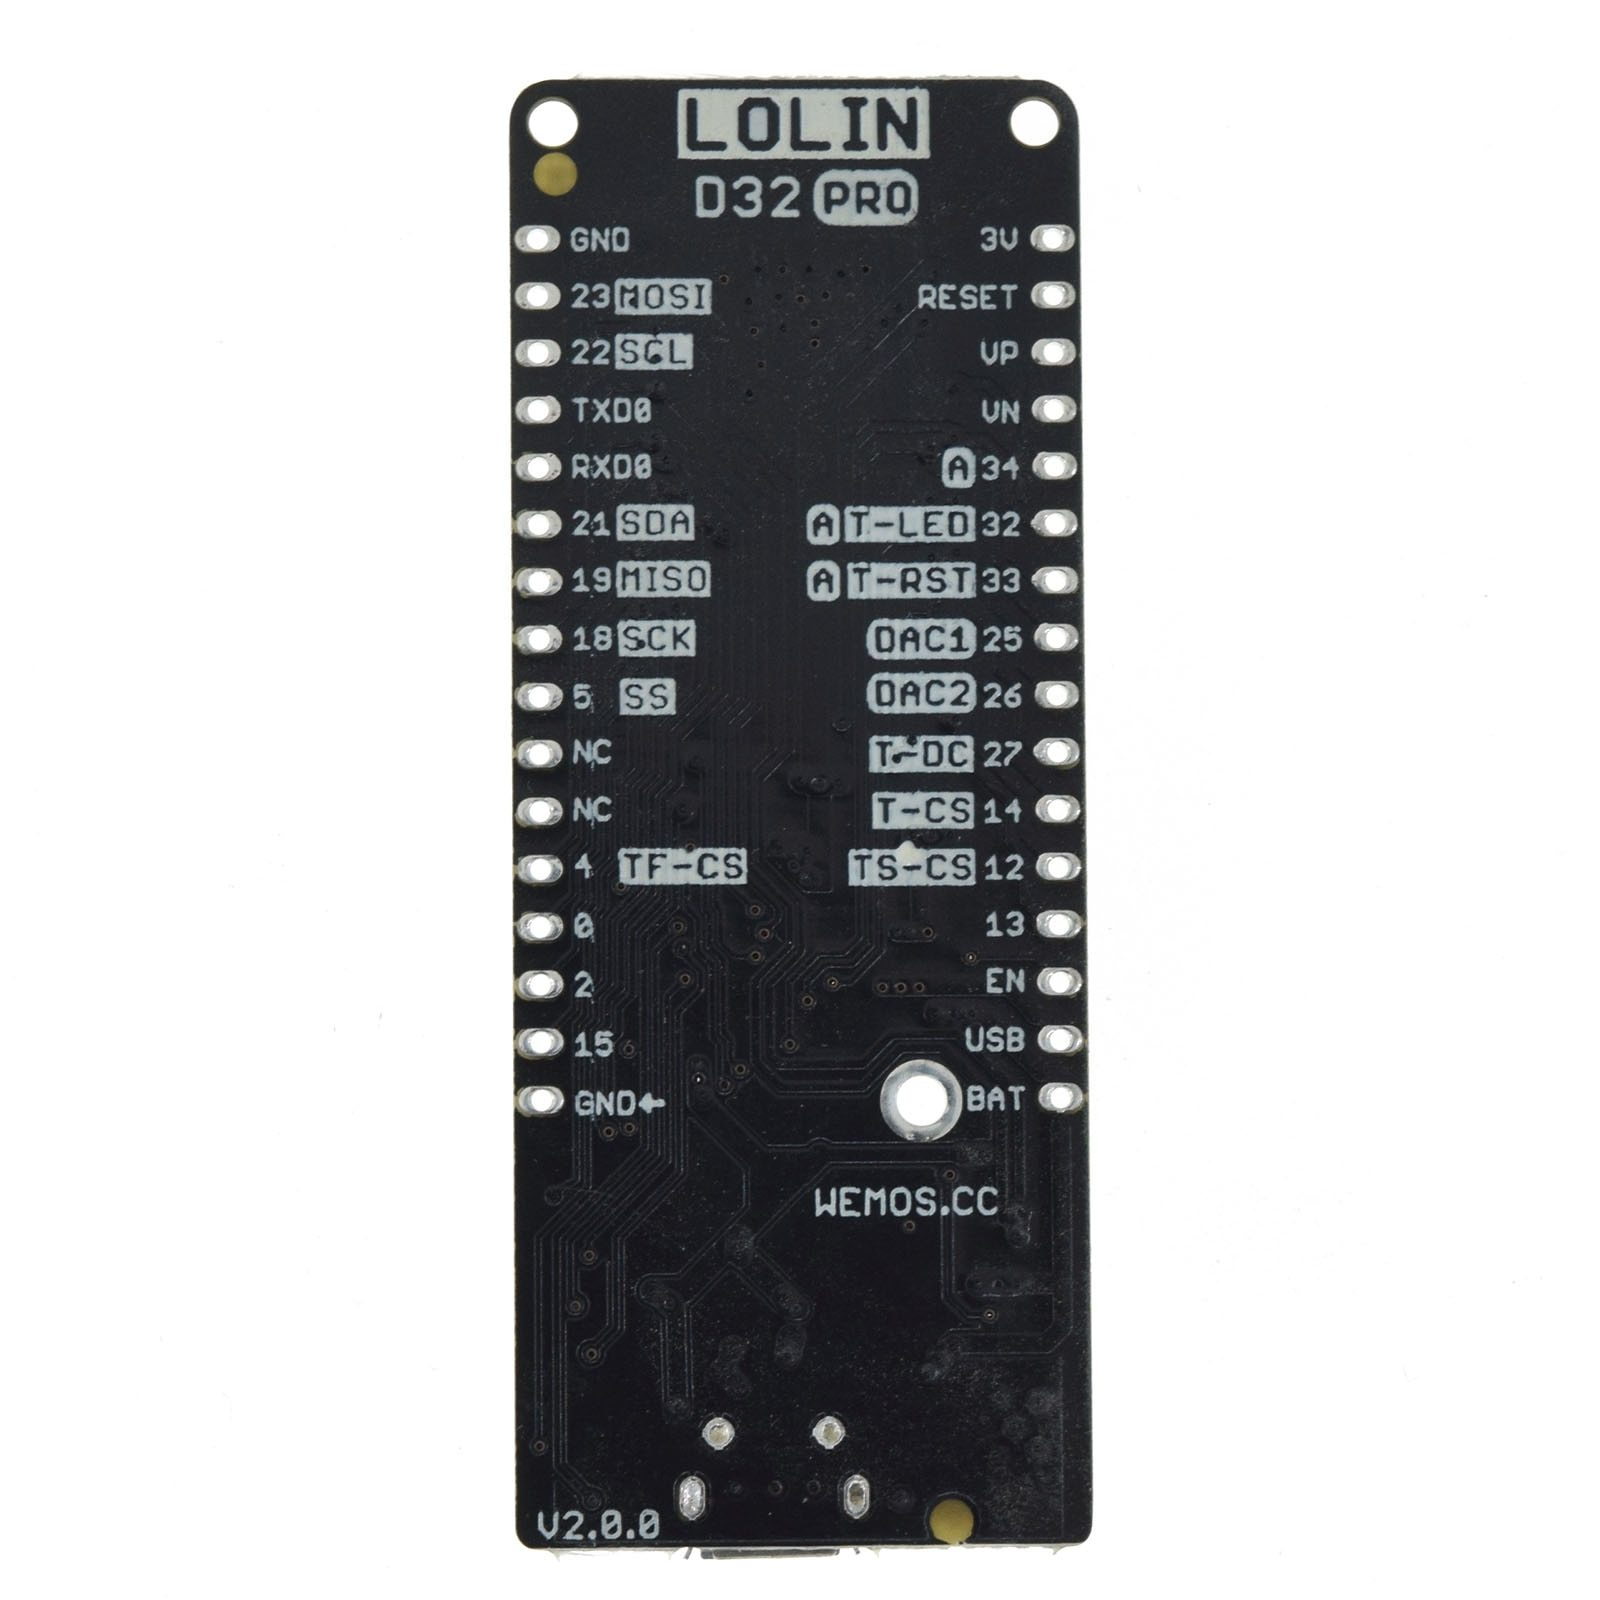 LOLIN D32 Pro V2 0 0 wifi & bluetooth board and 50 similar items